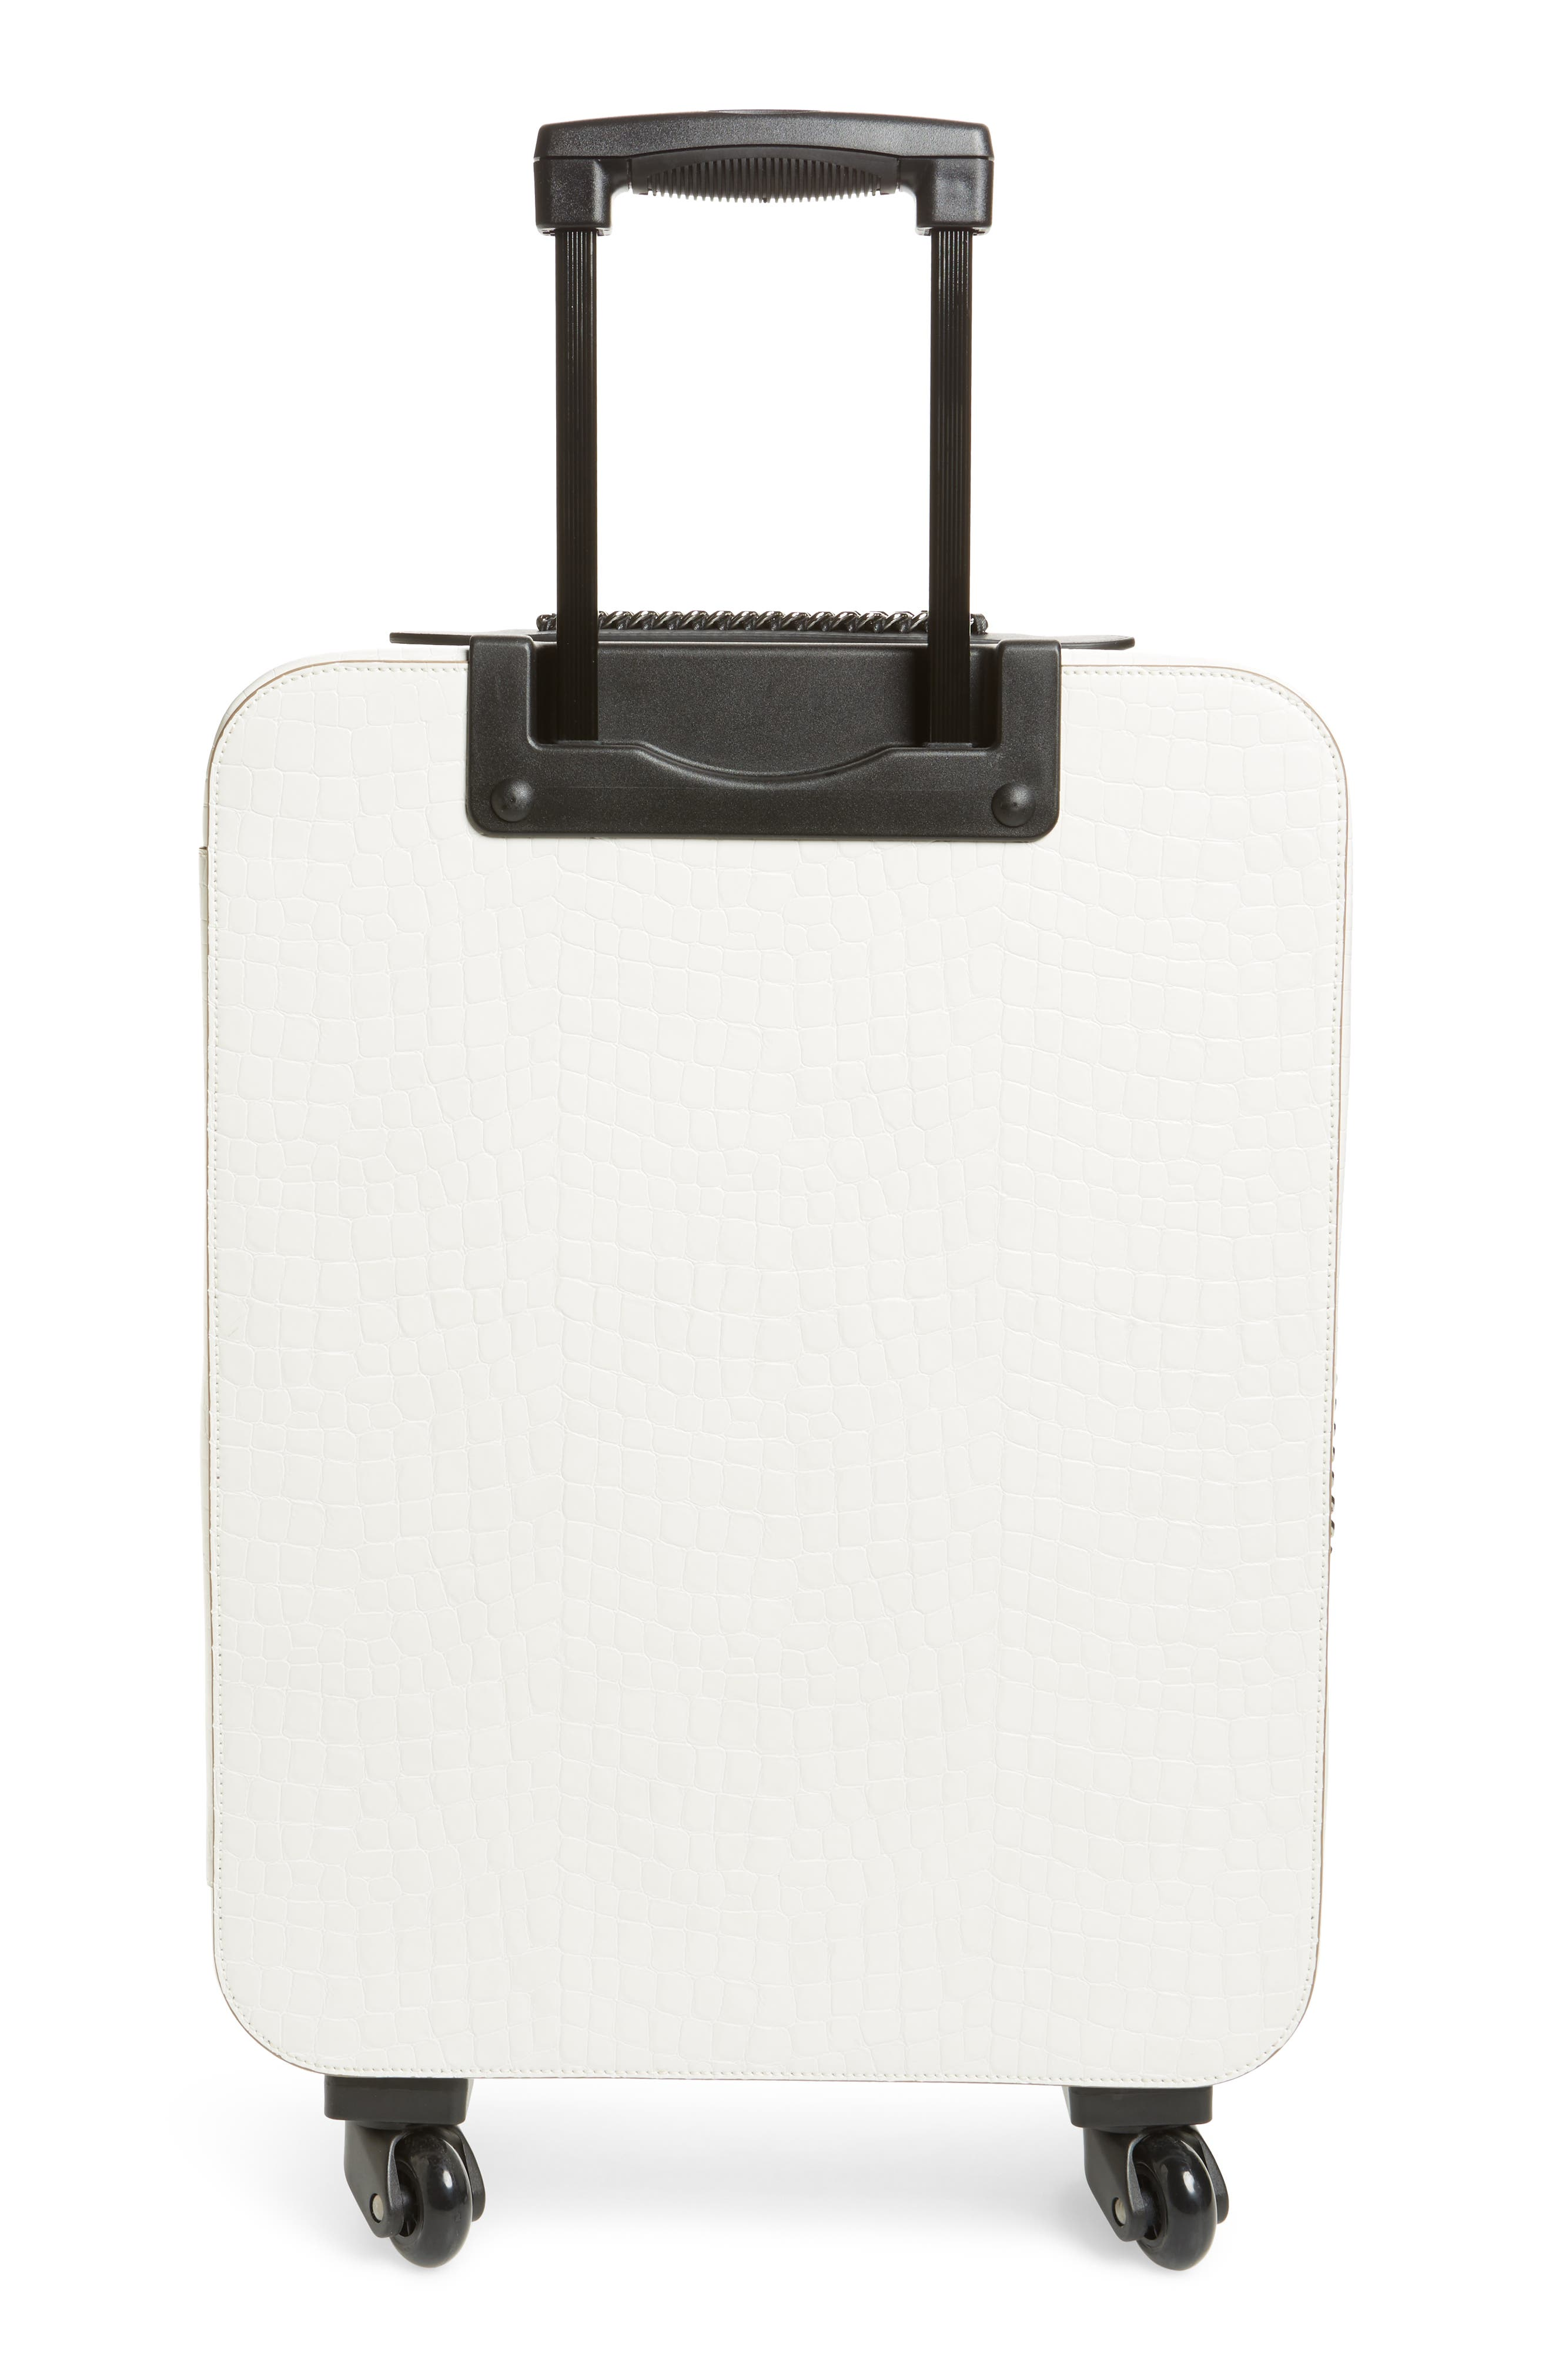 20-Inch Alter Croc Faux Leather Trolley Case,                             Alternate thumbnail 2, color,                             900